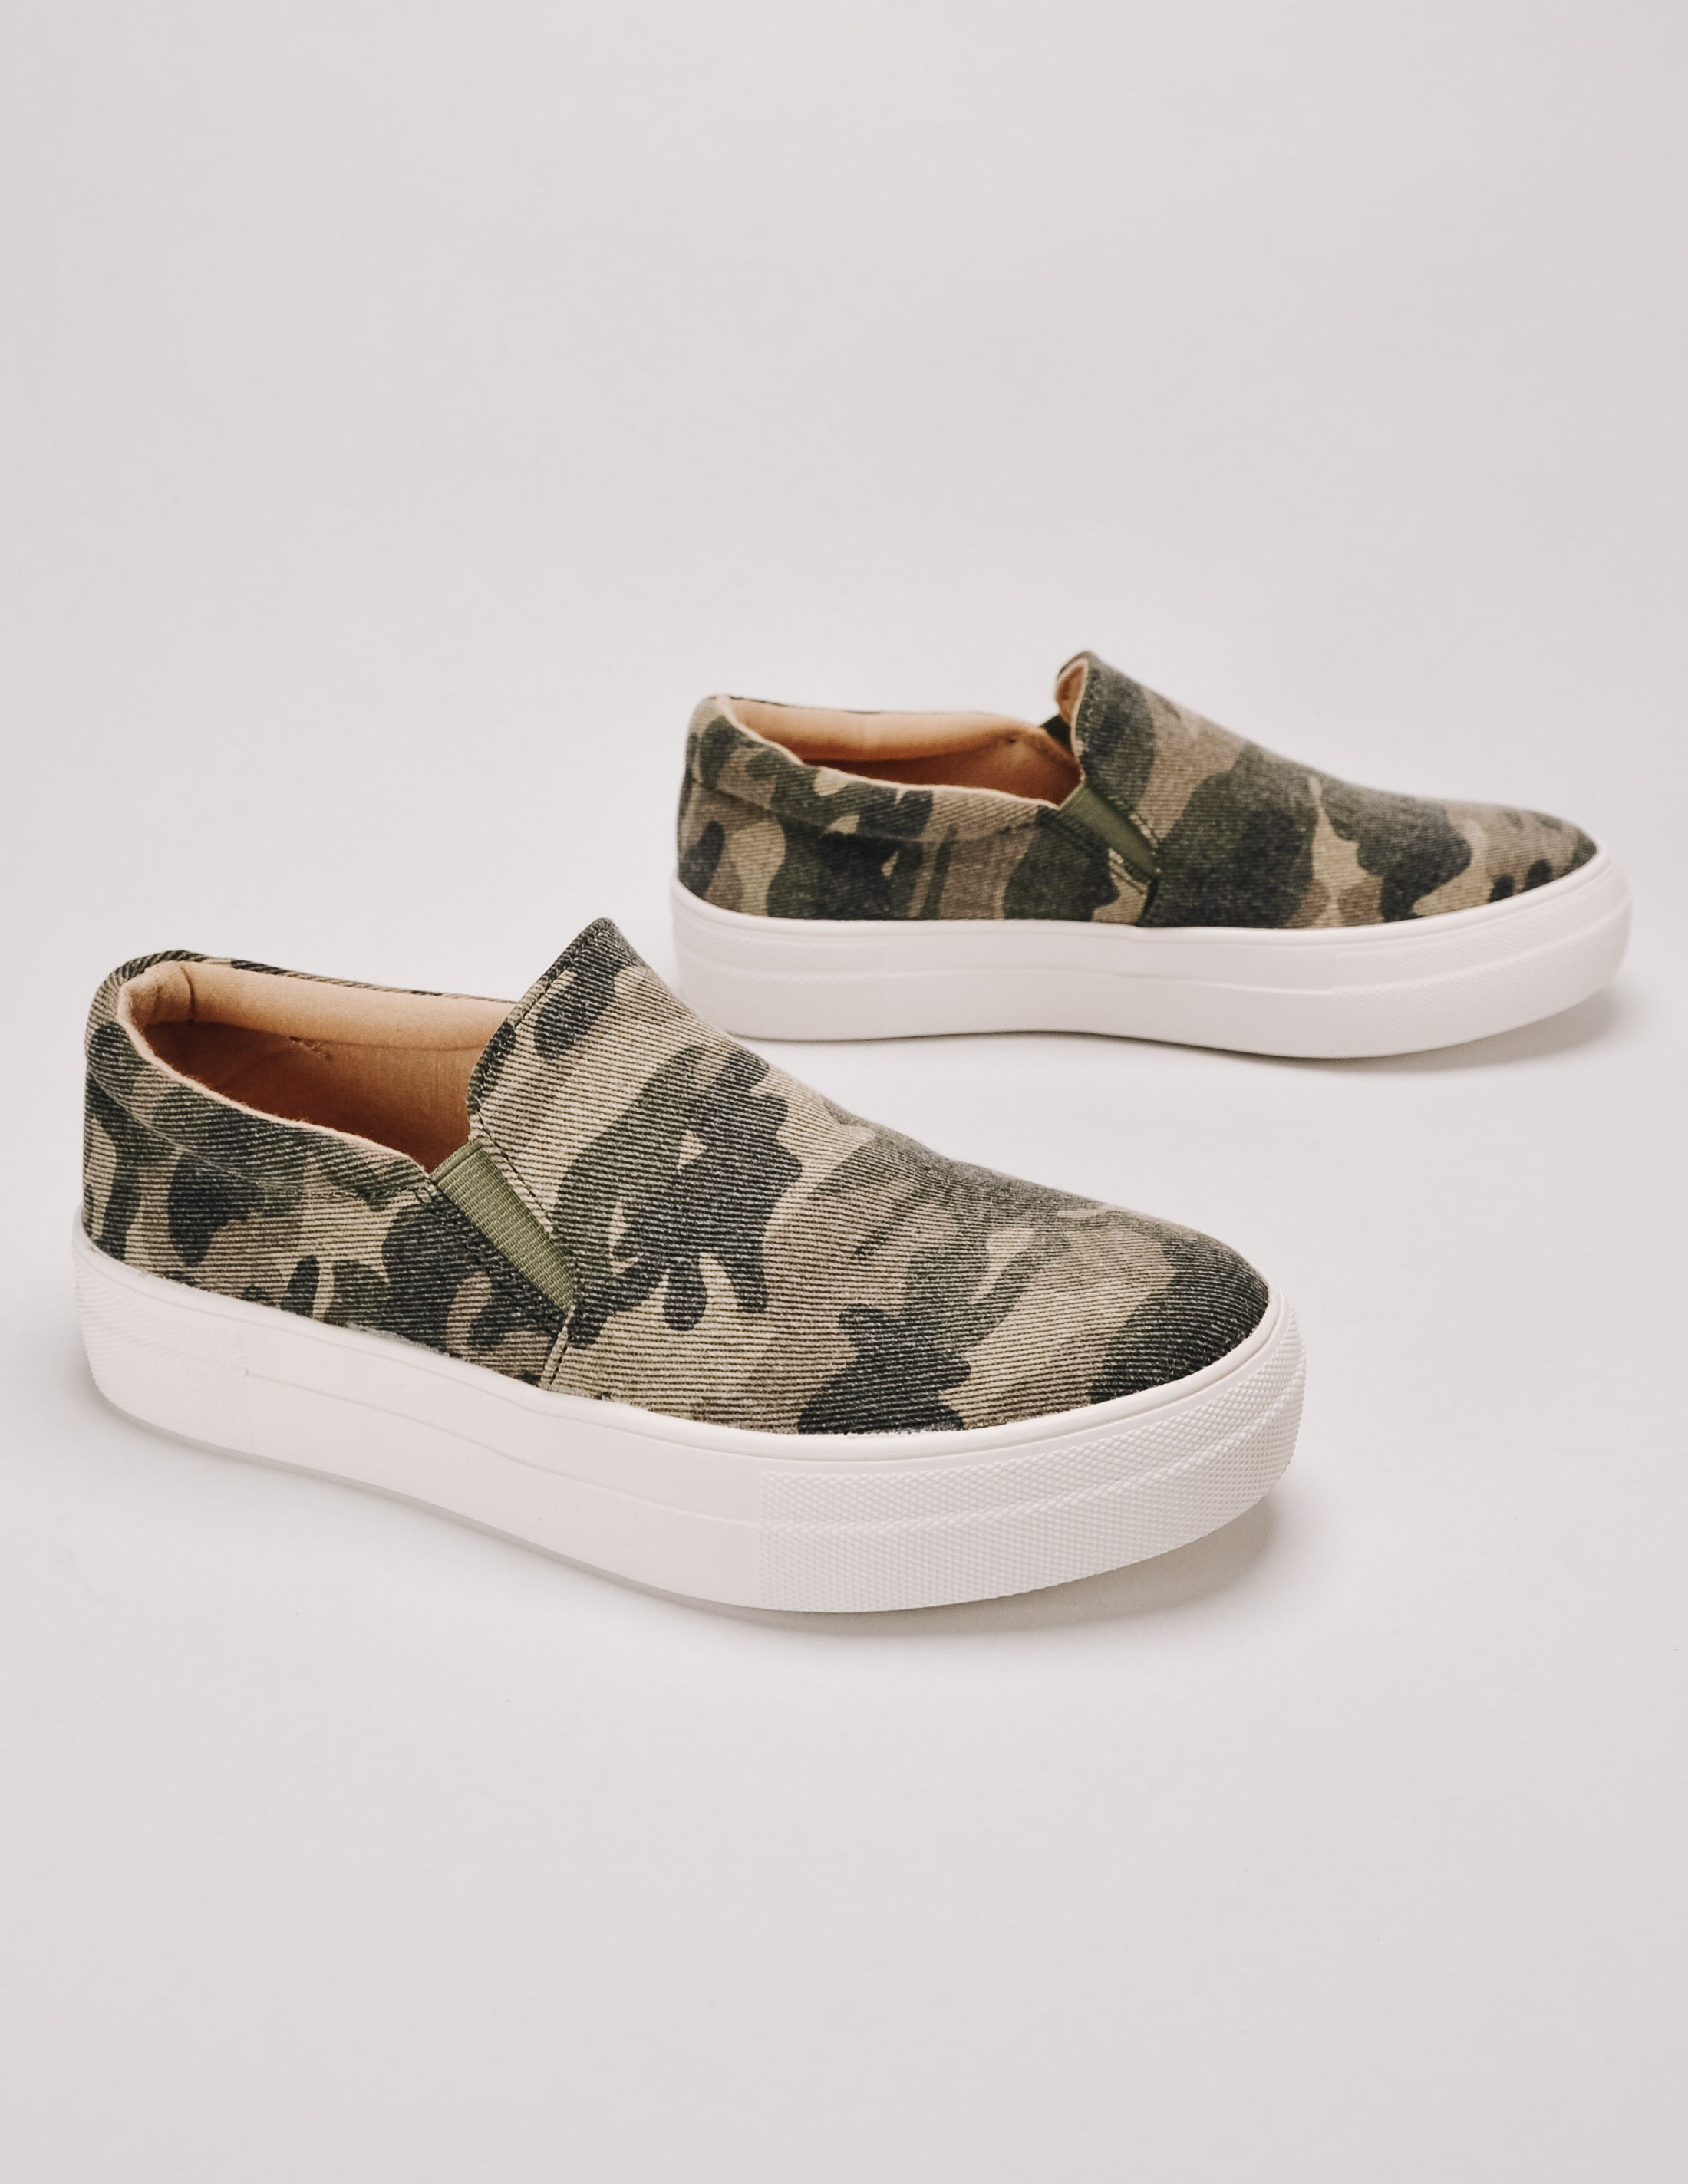 Camo canvas sneaker on white background - elle bleu shoes